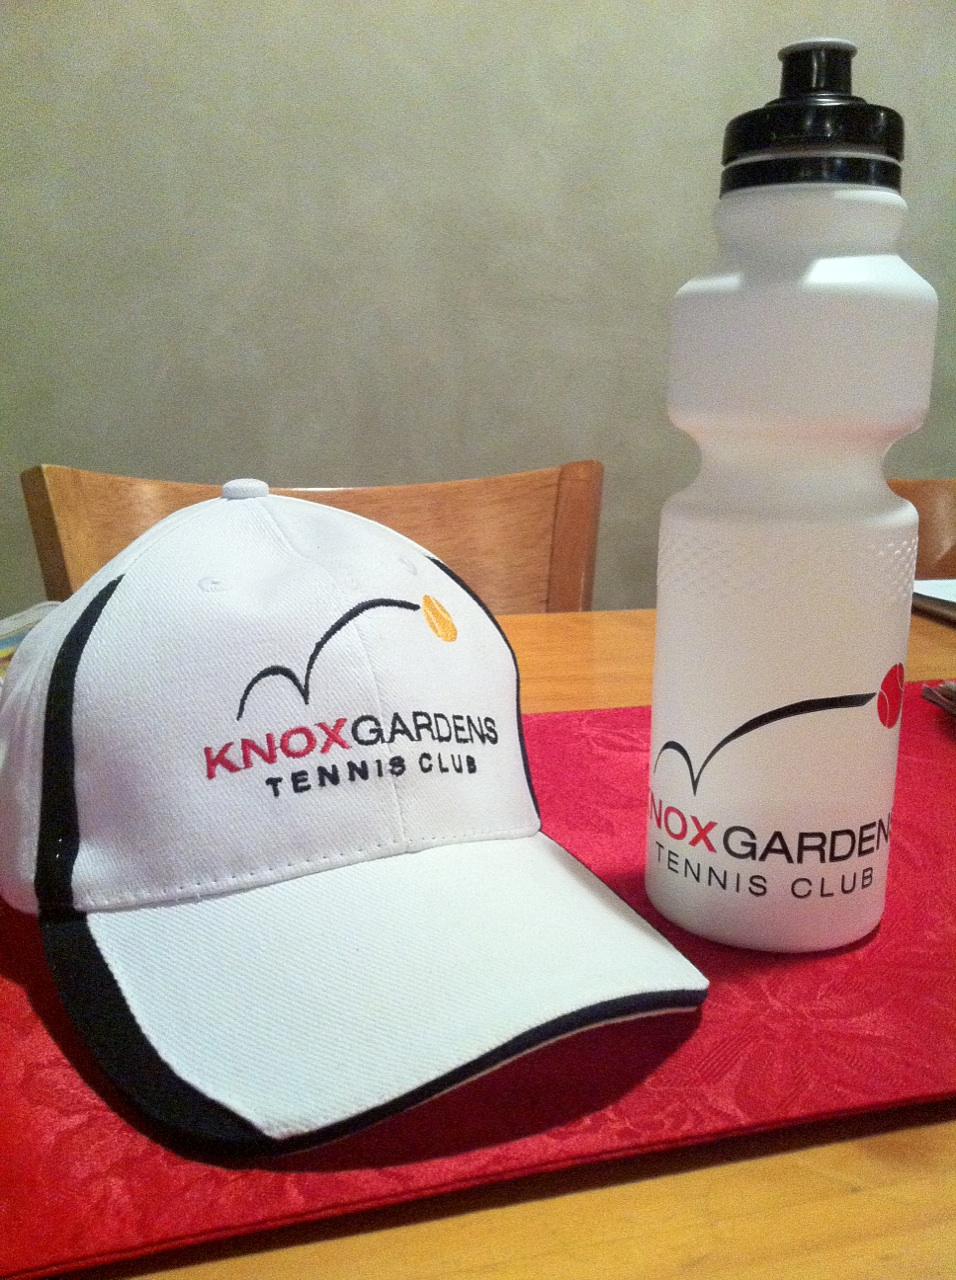 Knox Gardens Caps and drink bottles